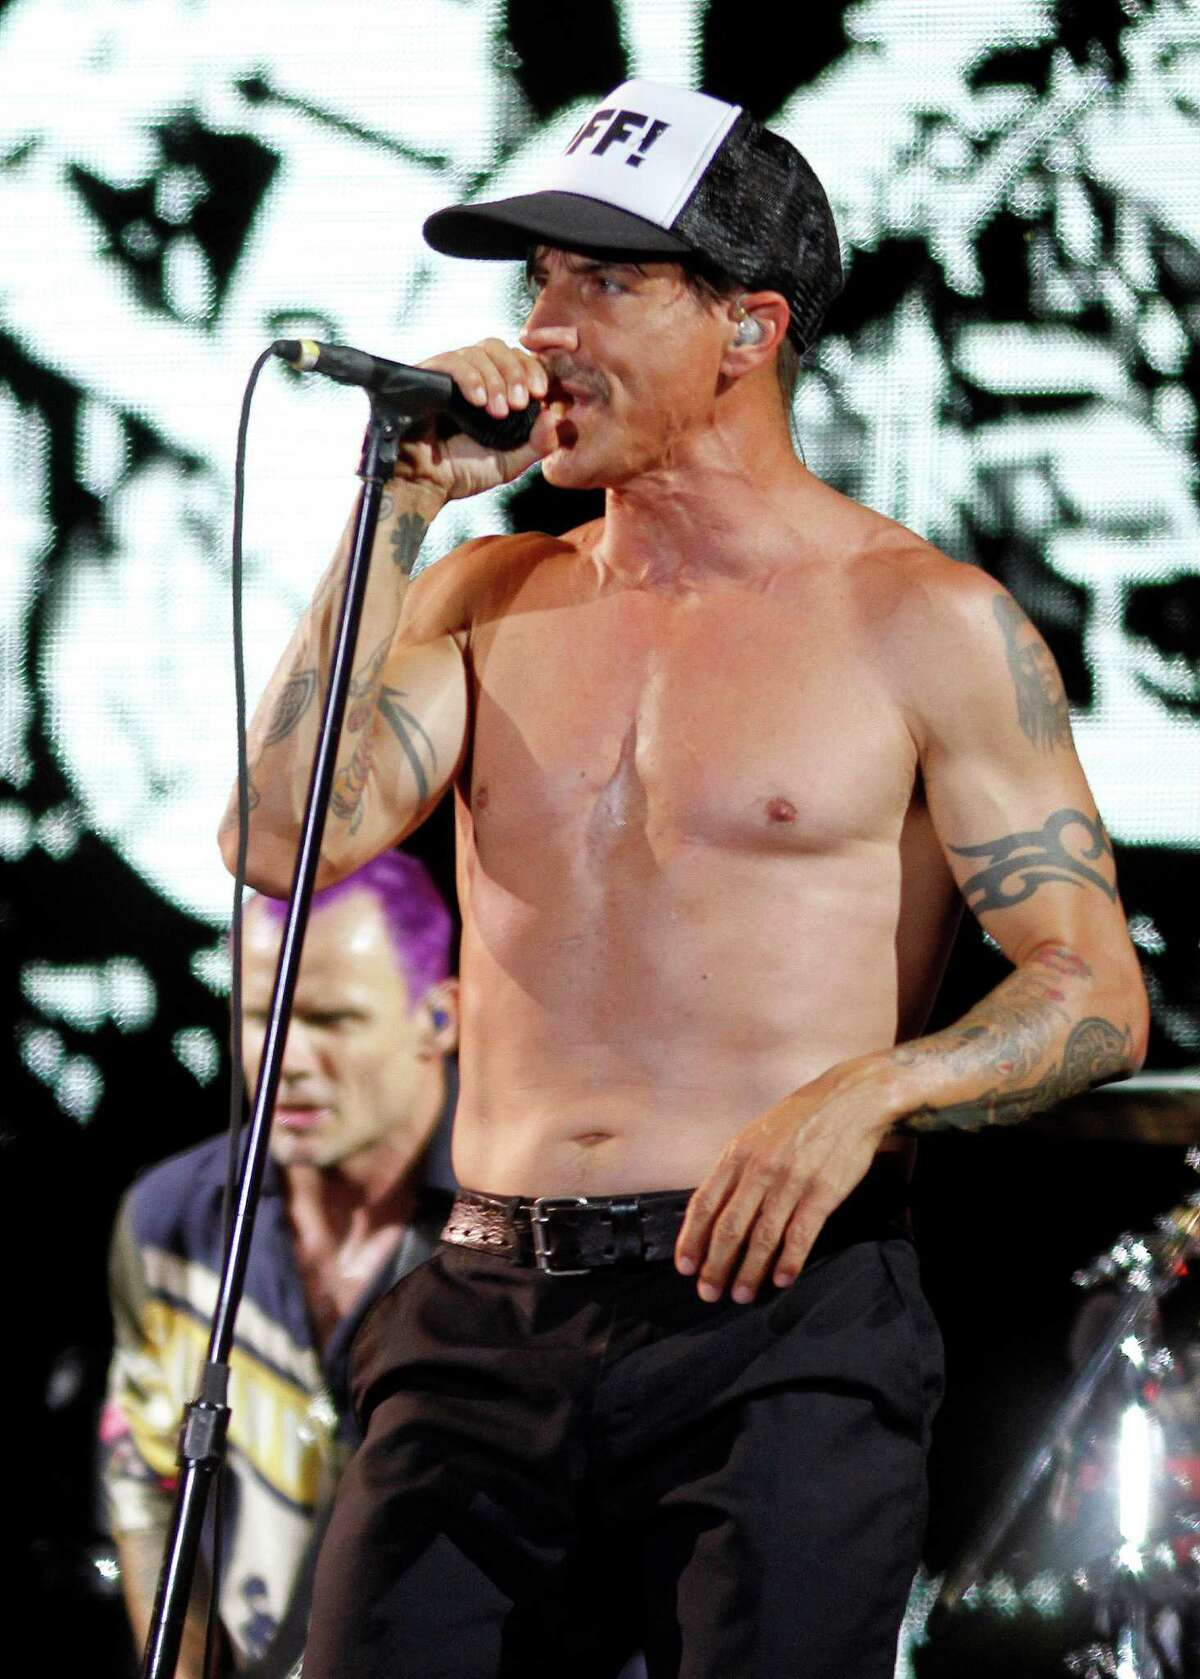 The Red Hot Chili Peppers perform at the Austin City Limits Music Festival, Sunday, Oct. 14, 2012, in Austin, Texas.(Photo by Jack Plunkett/Invision/AP)